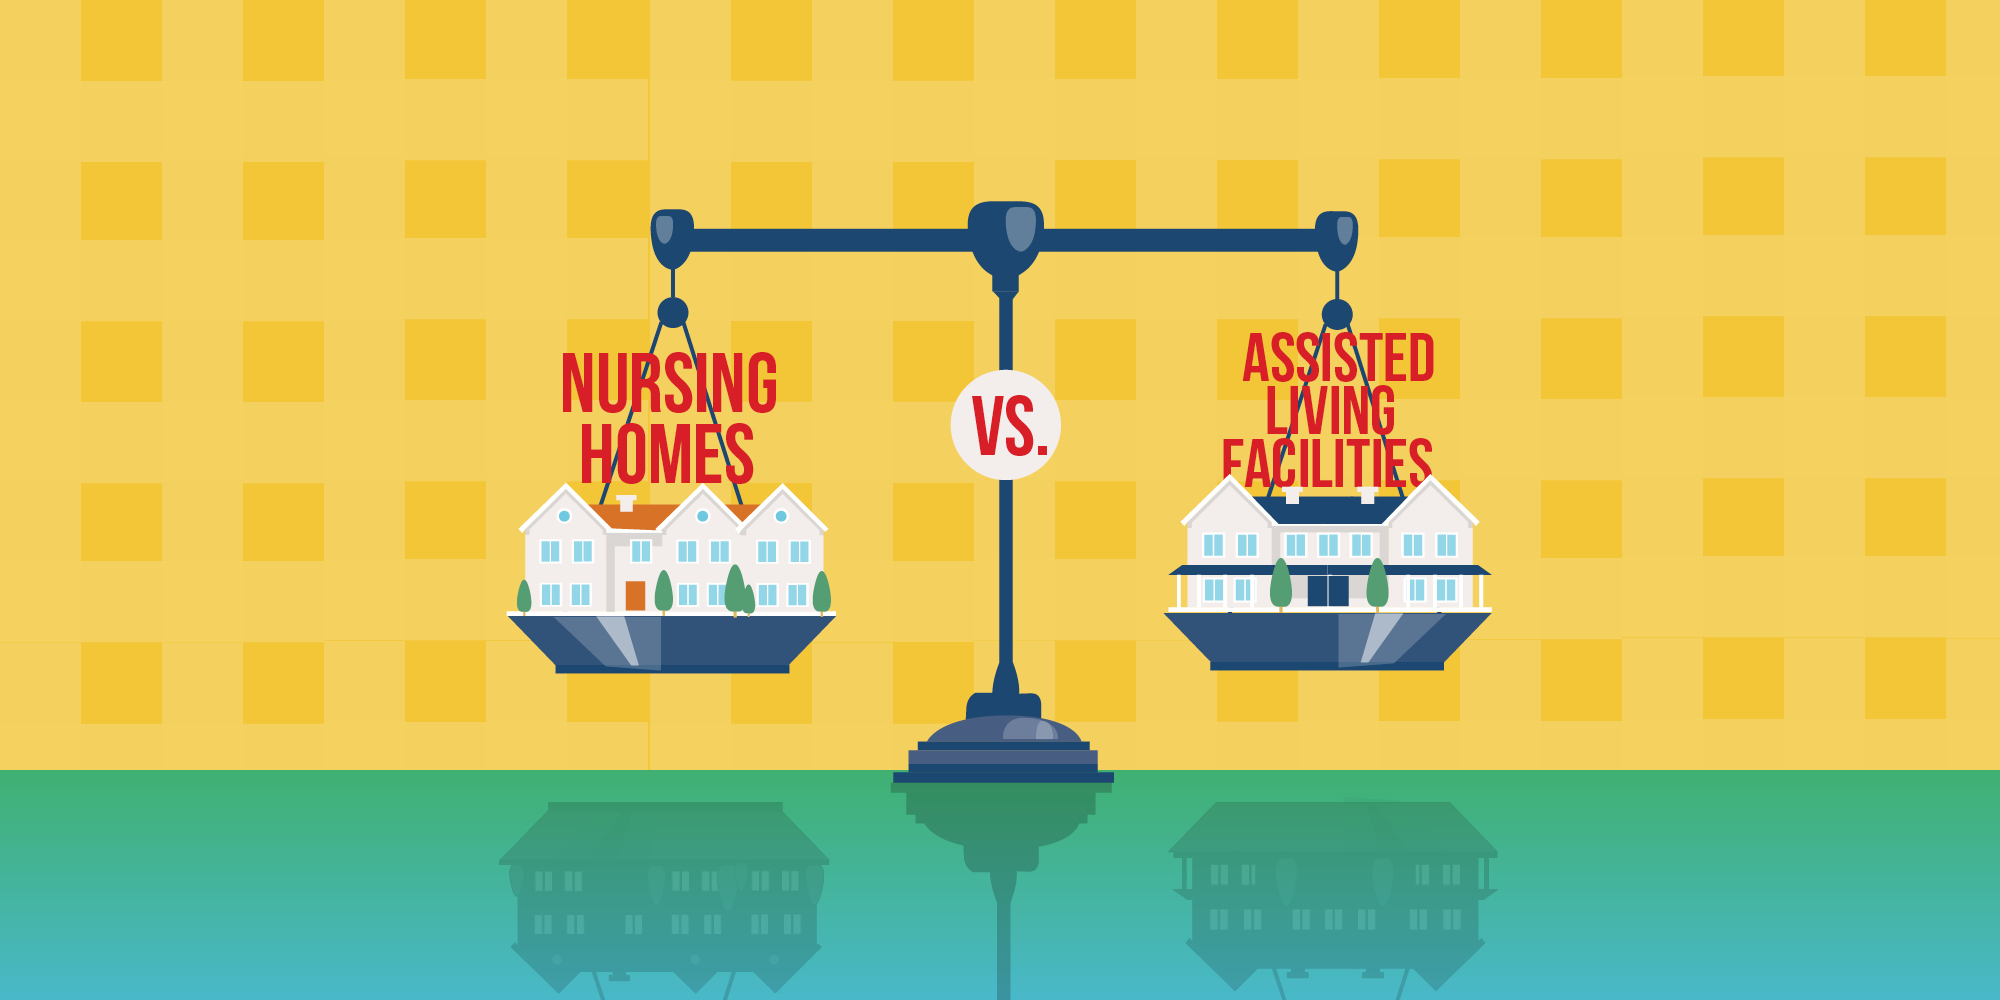 Nursing Homes Vs Assisted Living Facilities Differences And Similarities Kindly Care